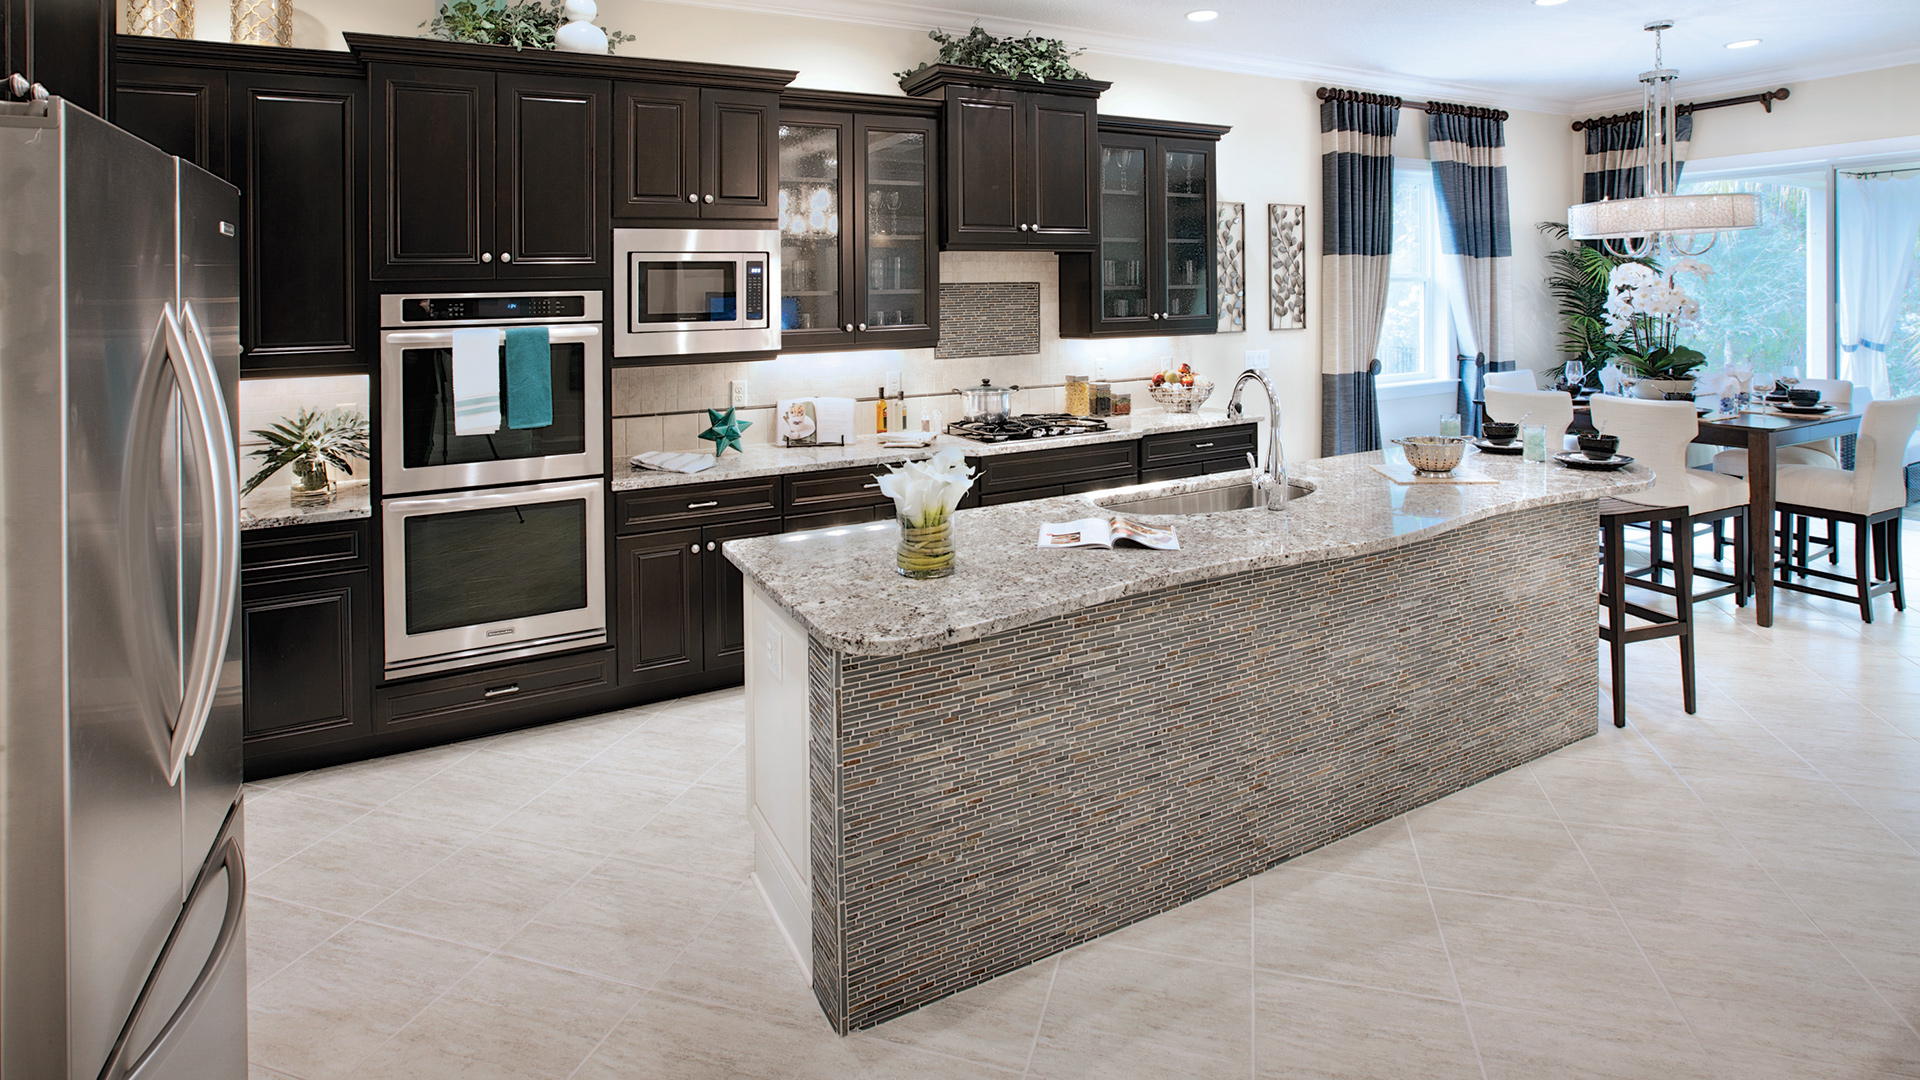 Gourmet kitchens with large islands